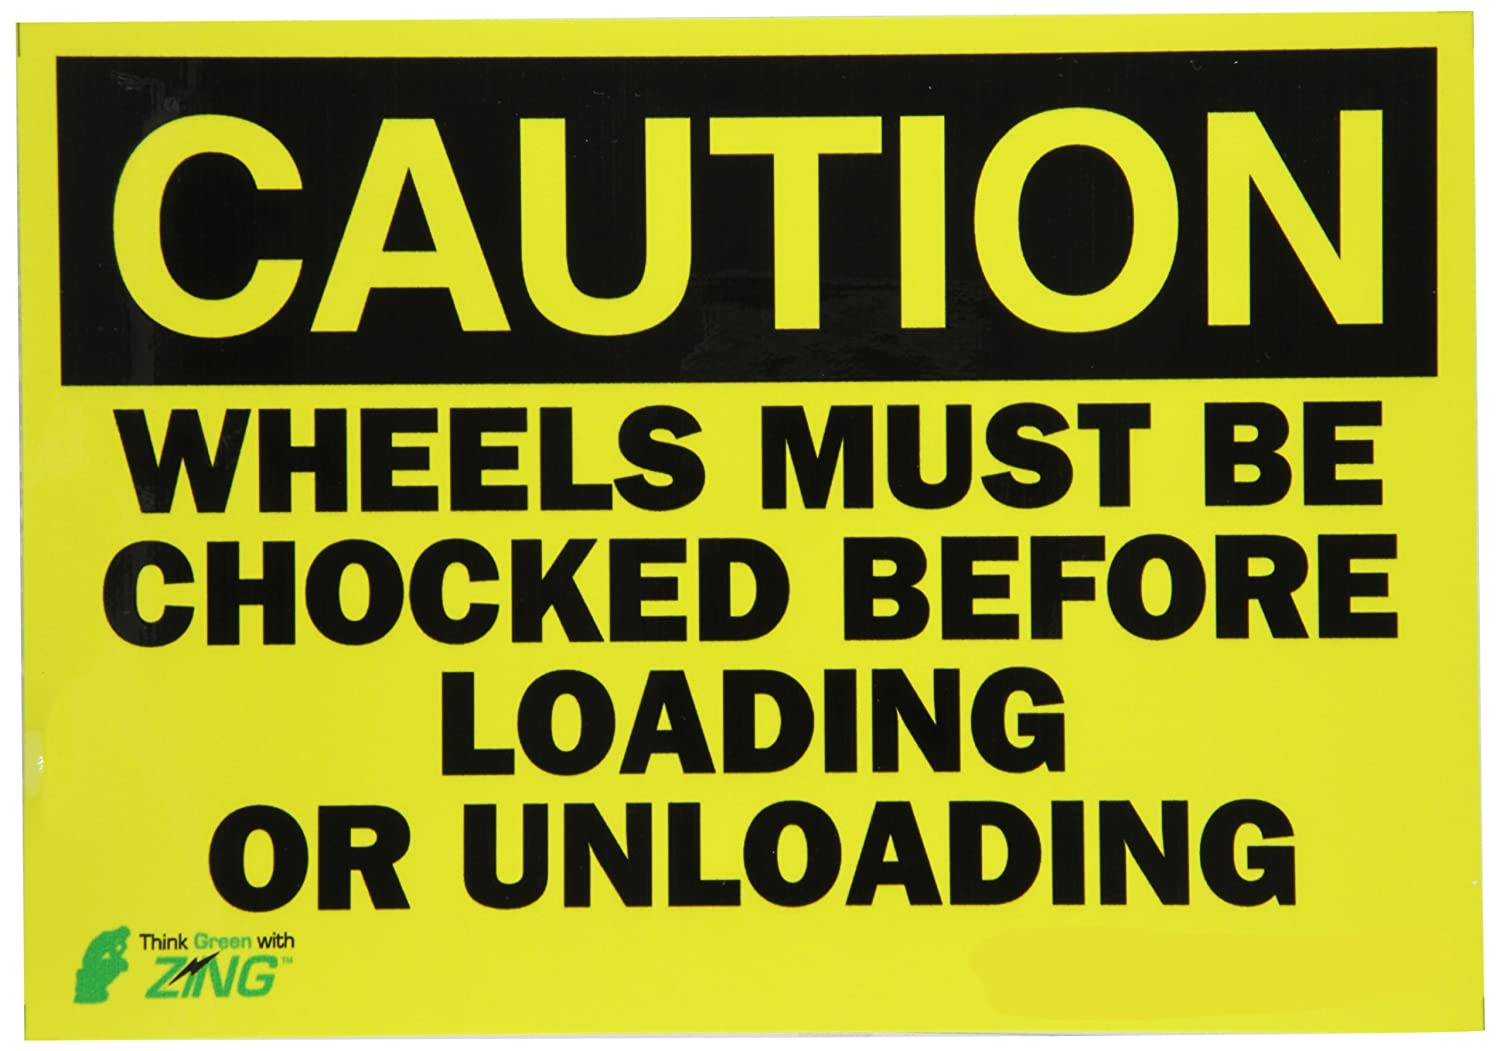 ZING 2153A Eco Safety Sign 10Hx14W CAUTION Wheels Must Be Chocked Recycled Aluminum Zing Green Products